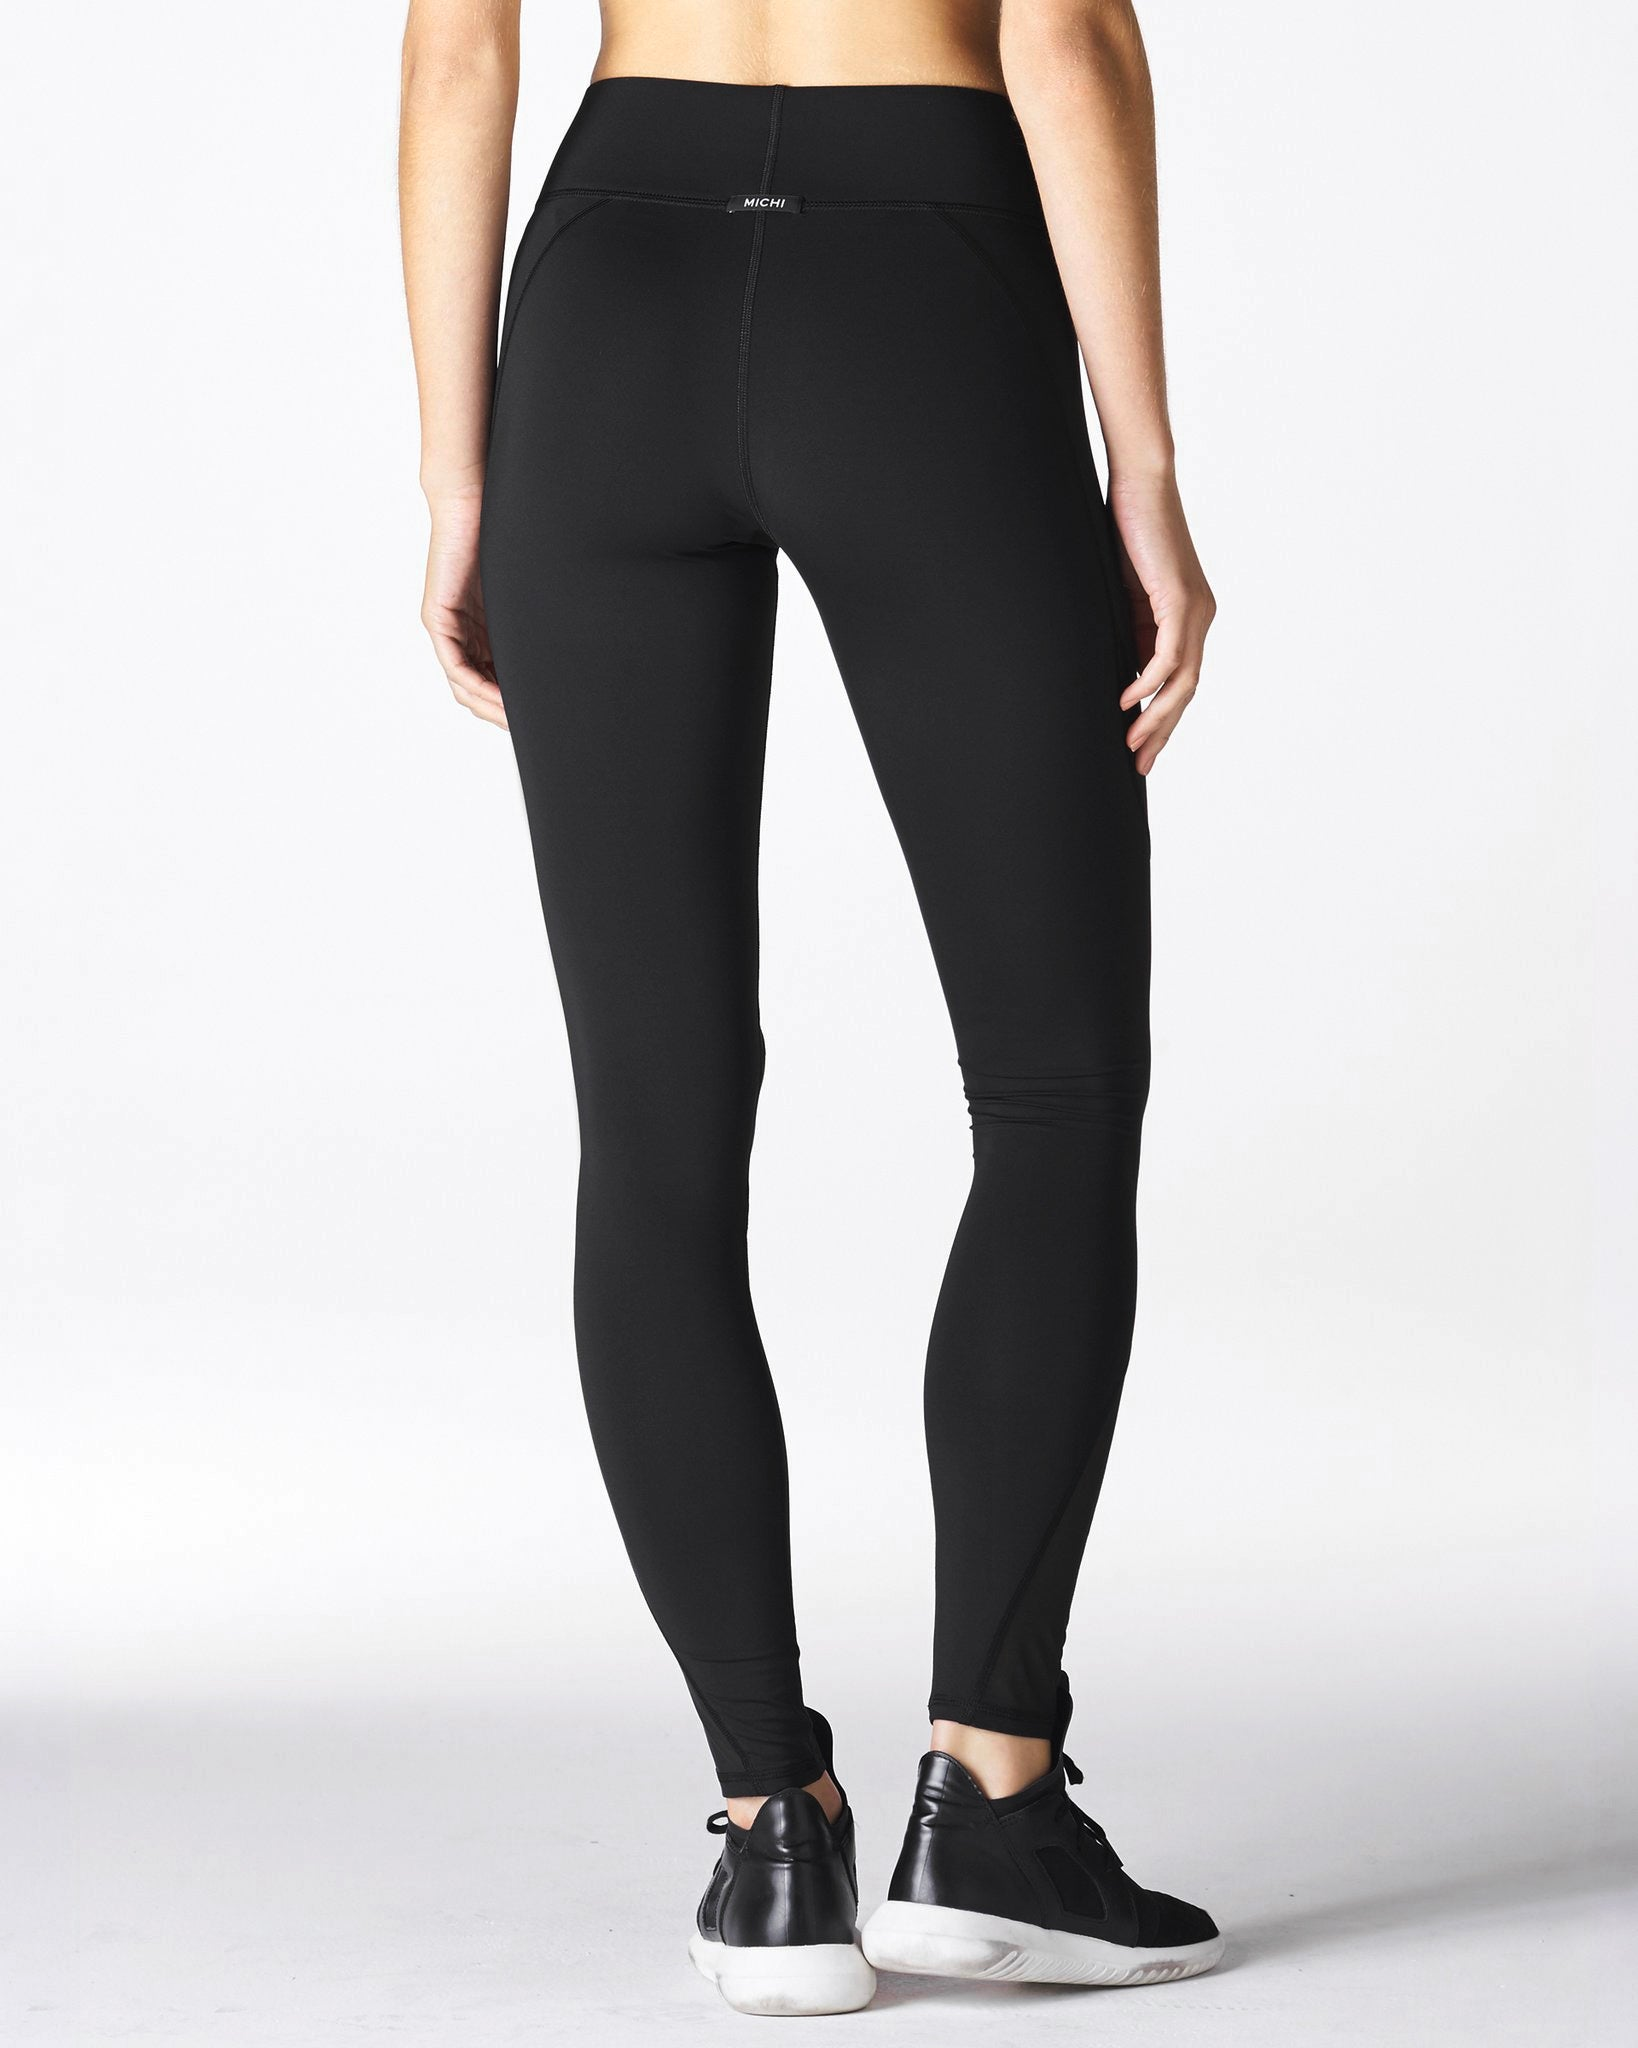 suprastelle-legging-black